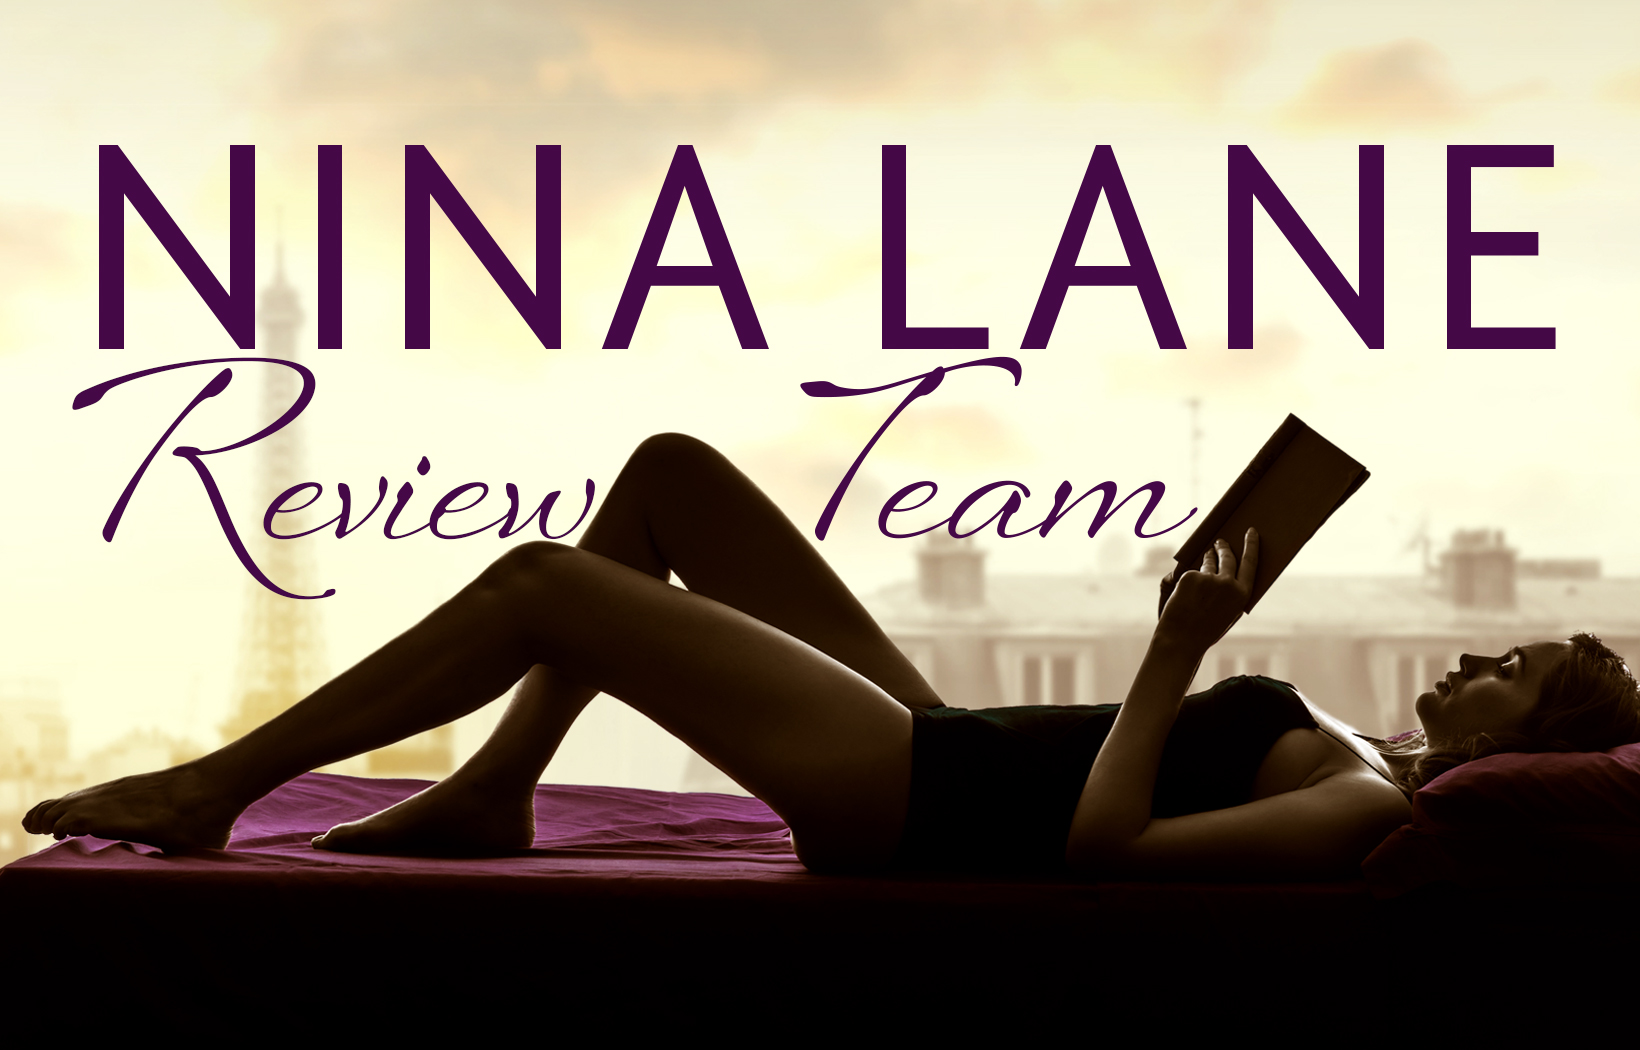 ninalane-reviewteam-Final-FacebookGroupHeader.jpg